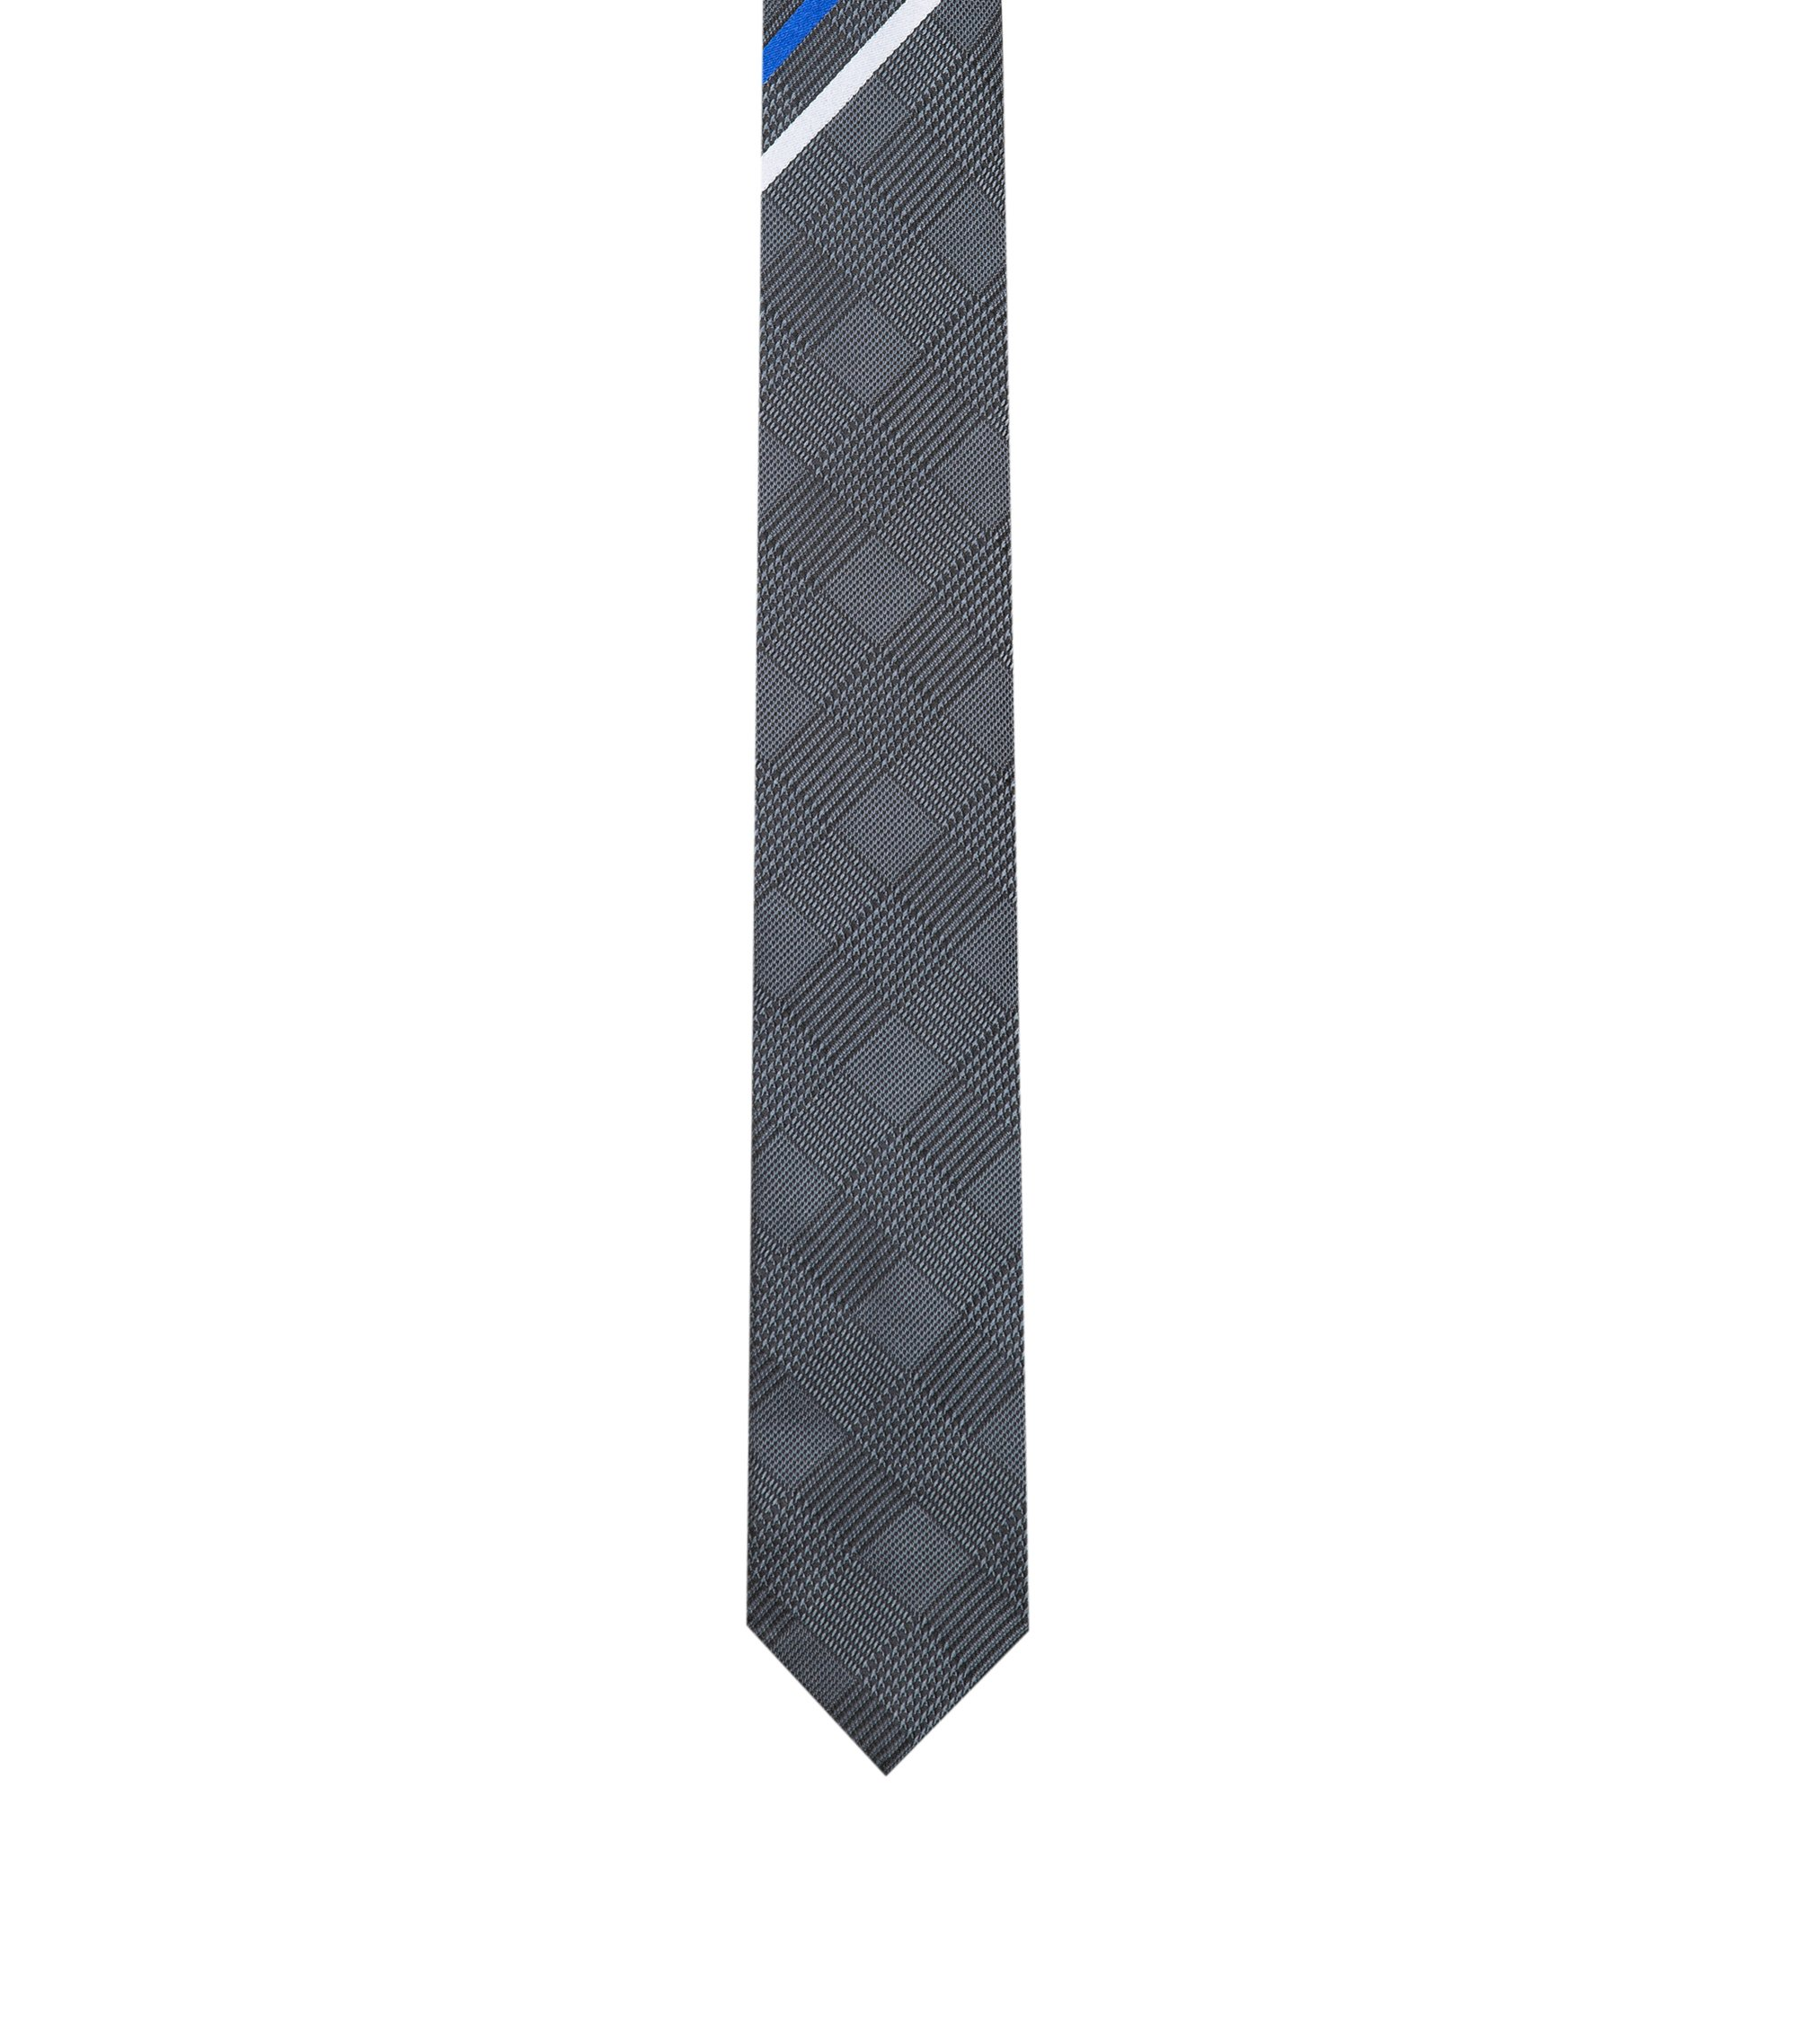 Diagonal-striped tie in silk jacquard, Black